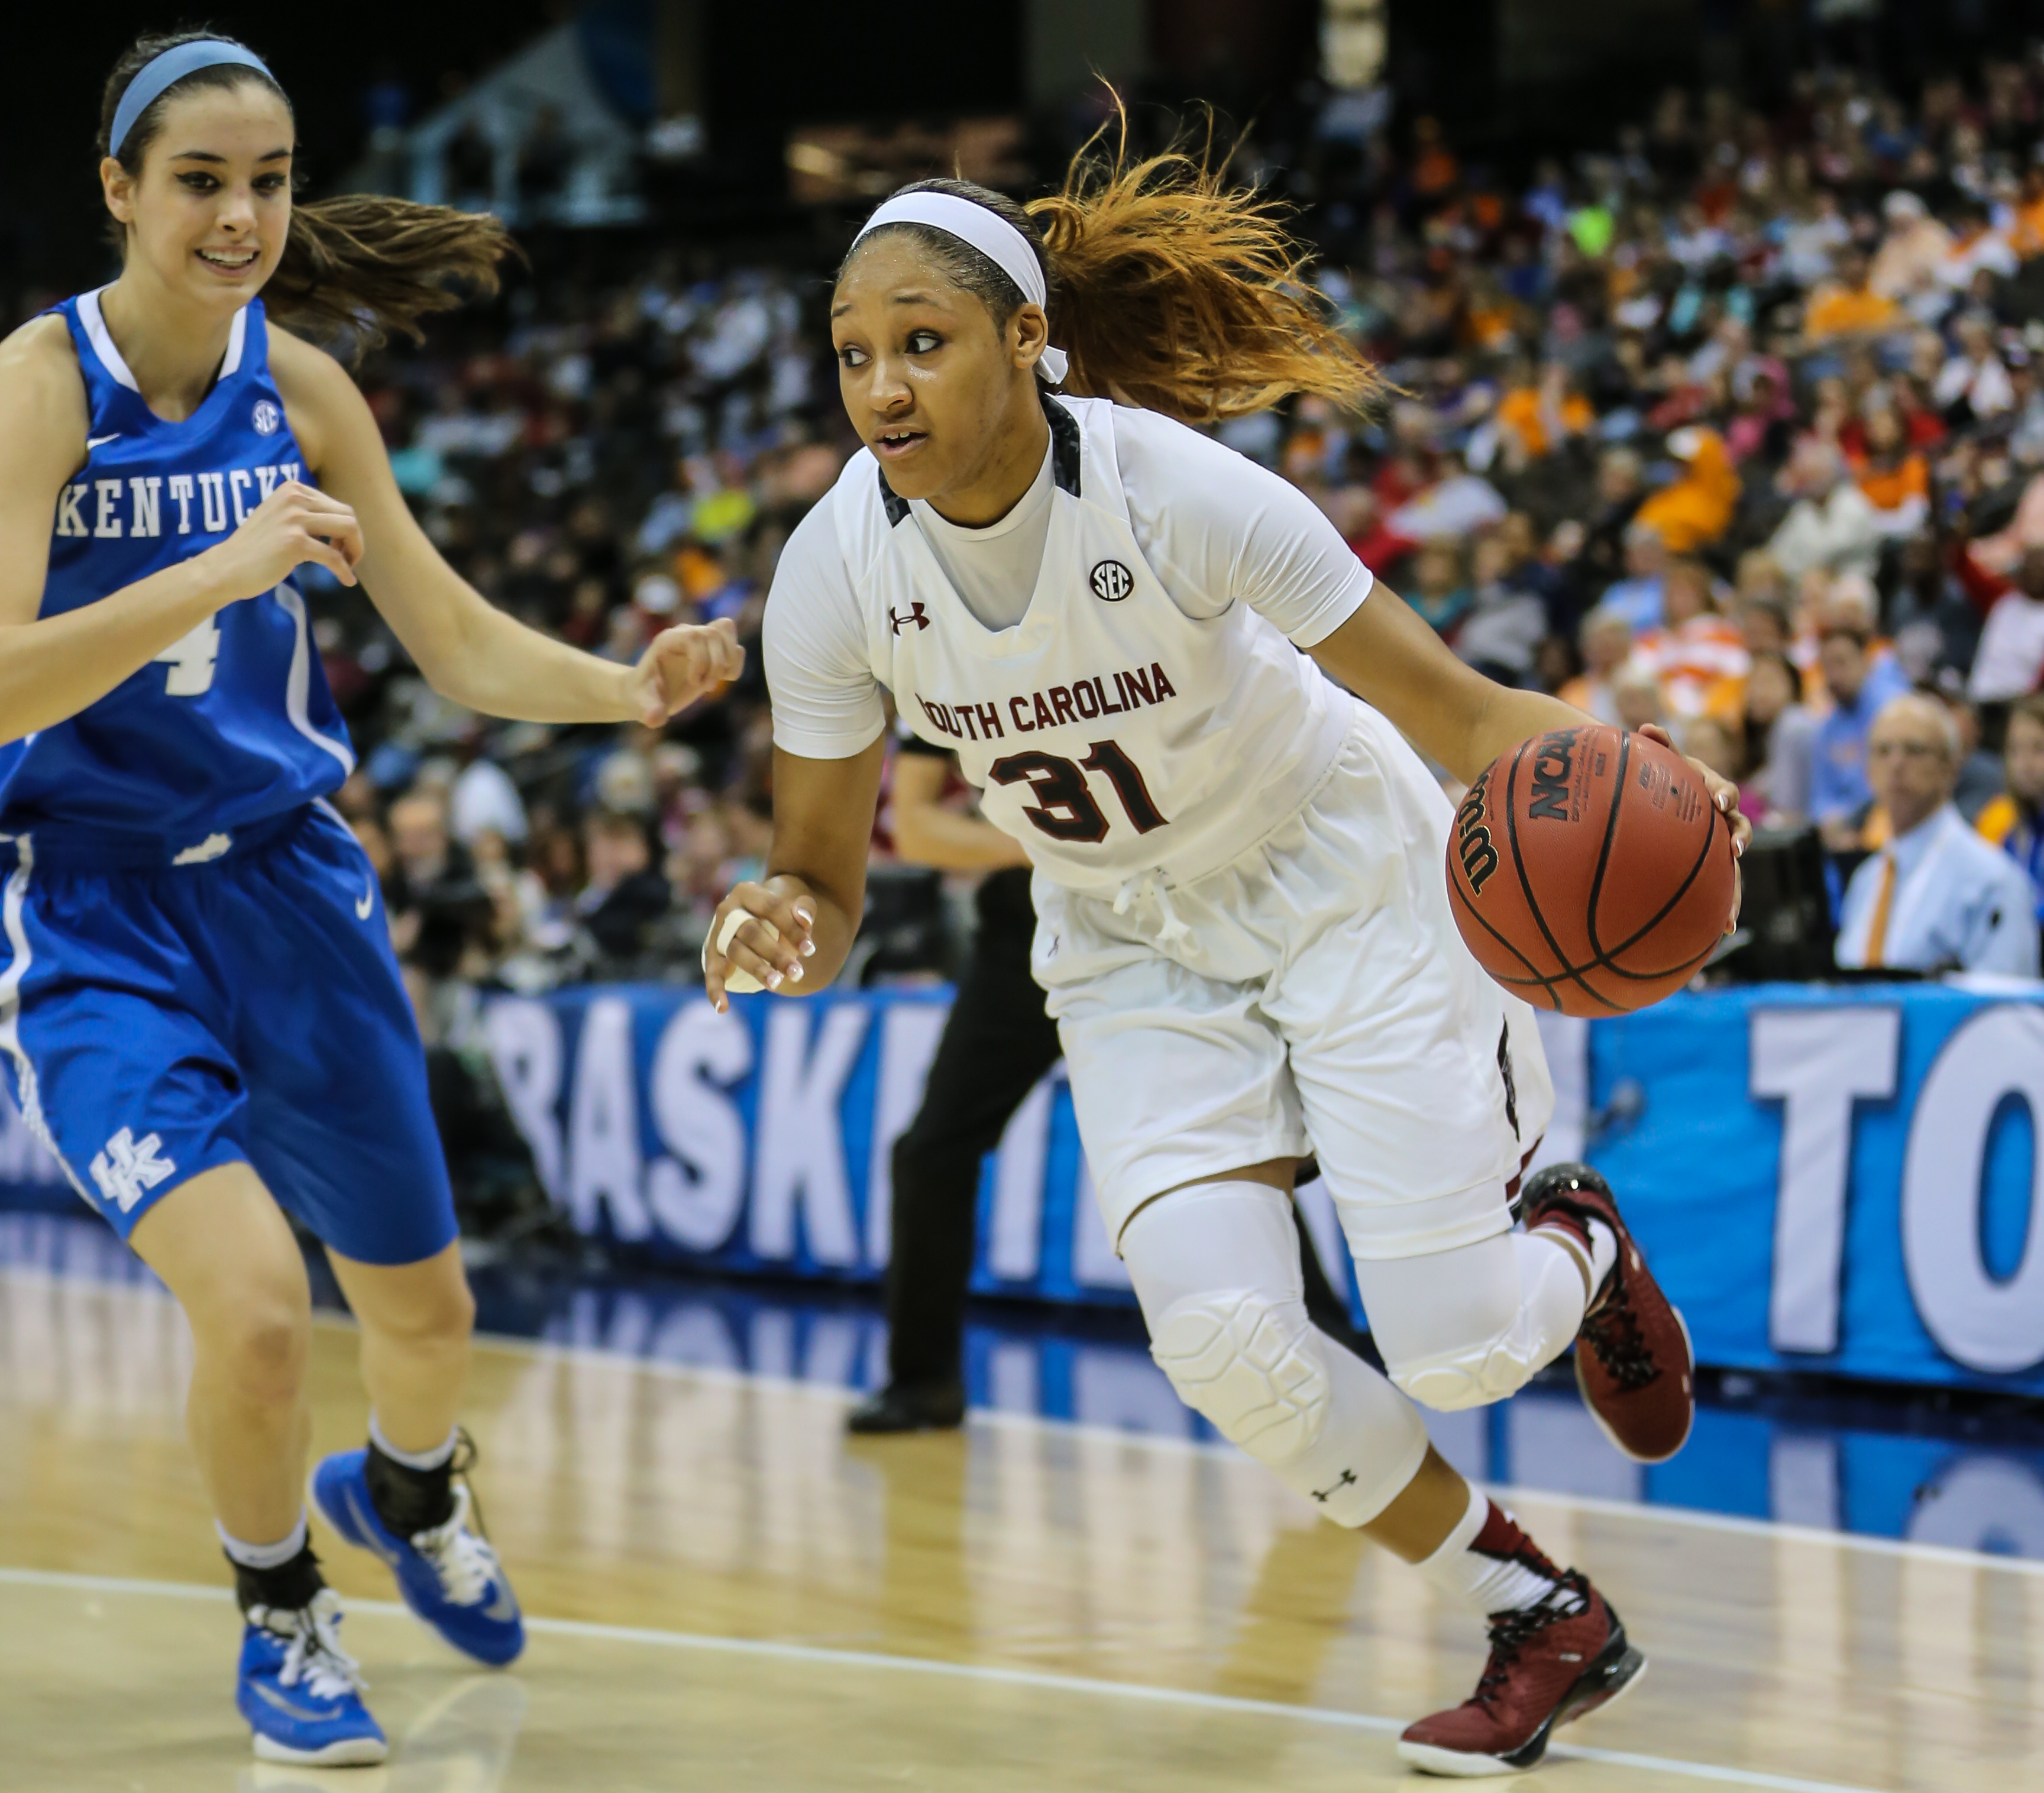 South Carolina forward Asia Dozier (31) drives to the basket defended by Kentucky forward Maci Morris (4) during an NCAA college basketball game in the Southeastern Conference women's tournament semifinal in Jacksonville, Fla., Saturday, March 5, 2016. (A